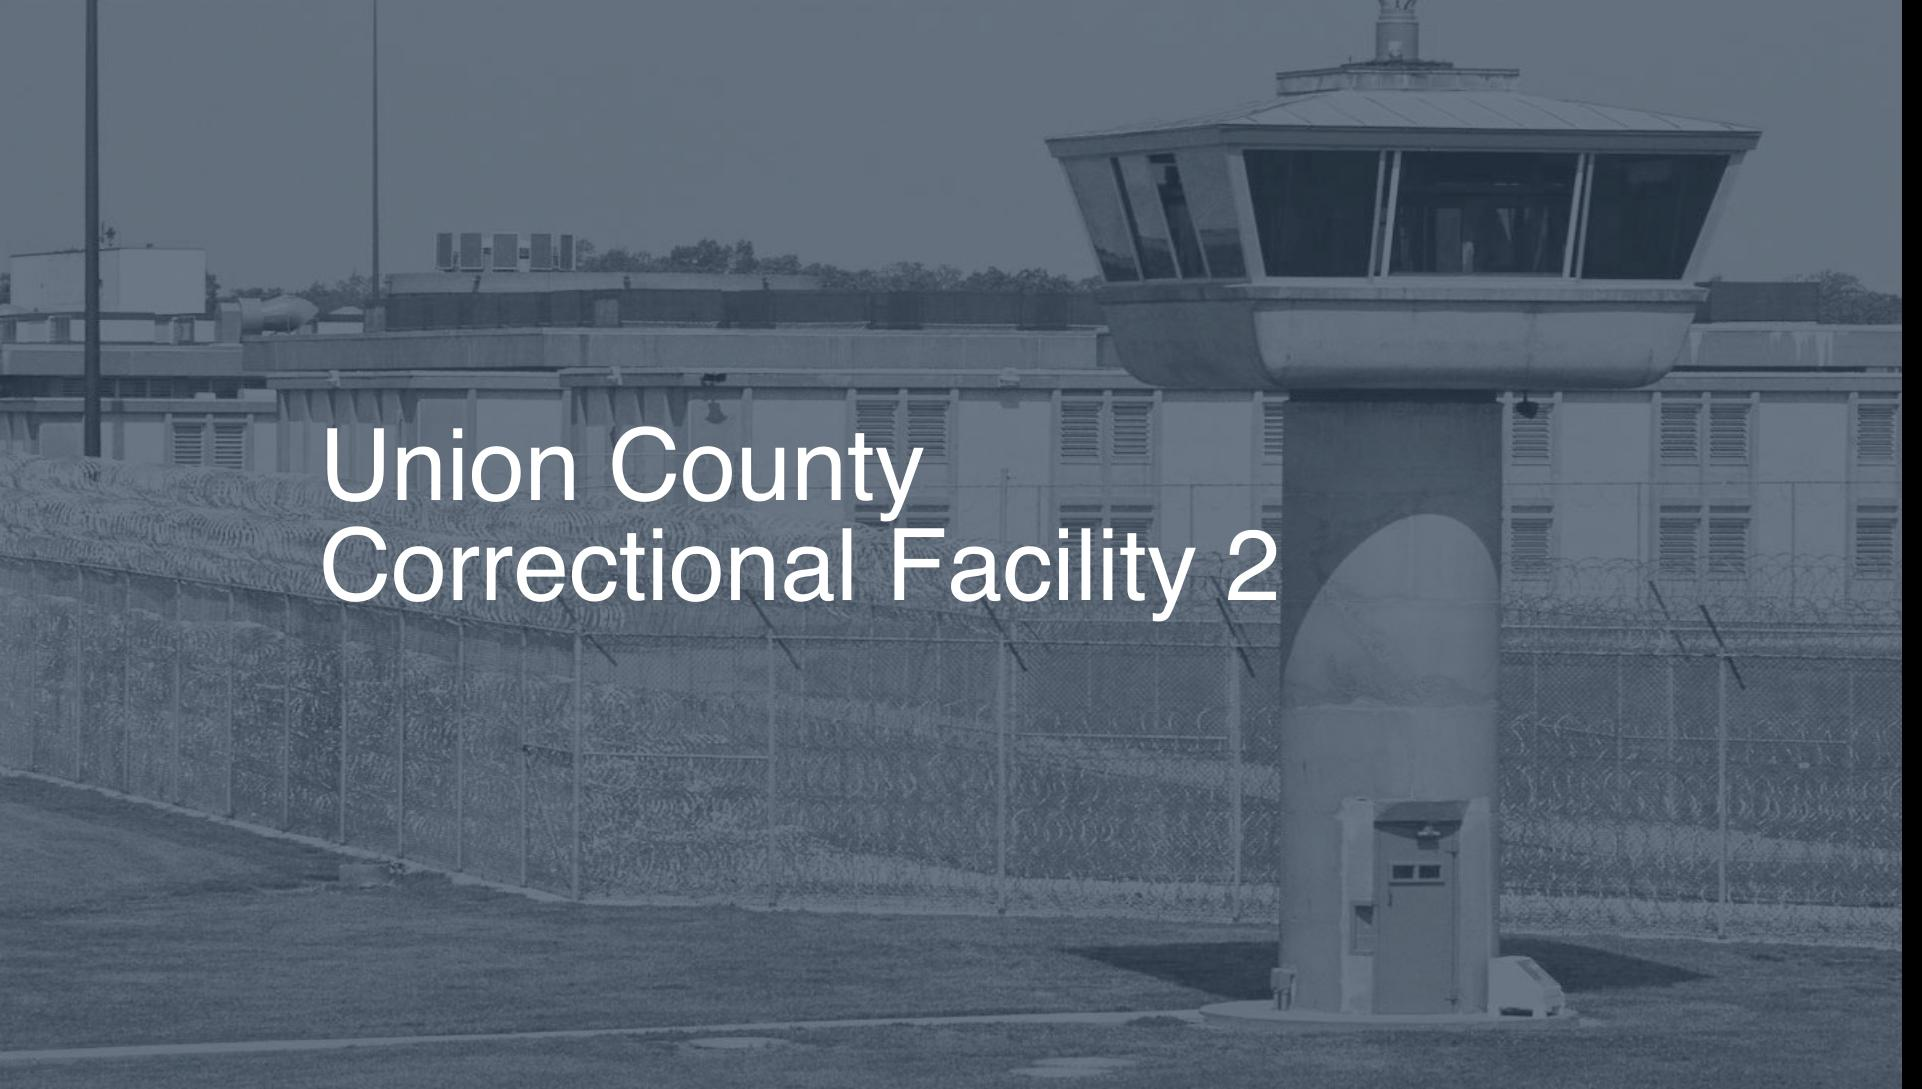 Union County Correctional Facility | Pigeonly - Inmate